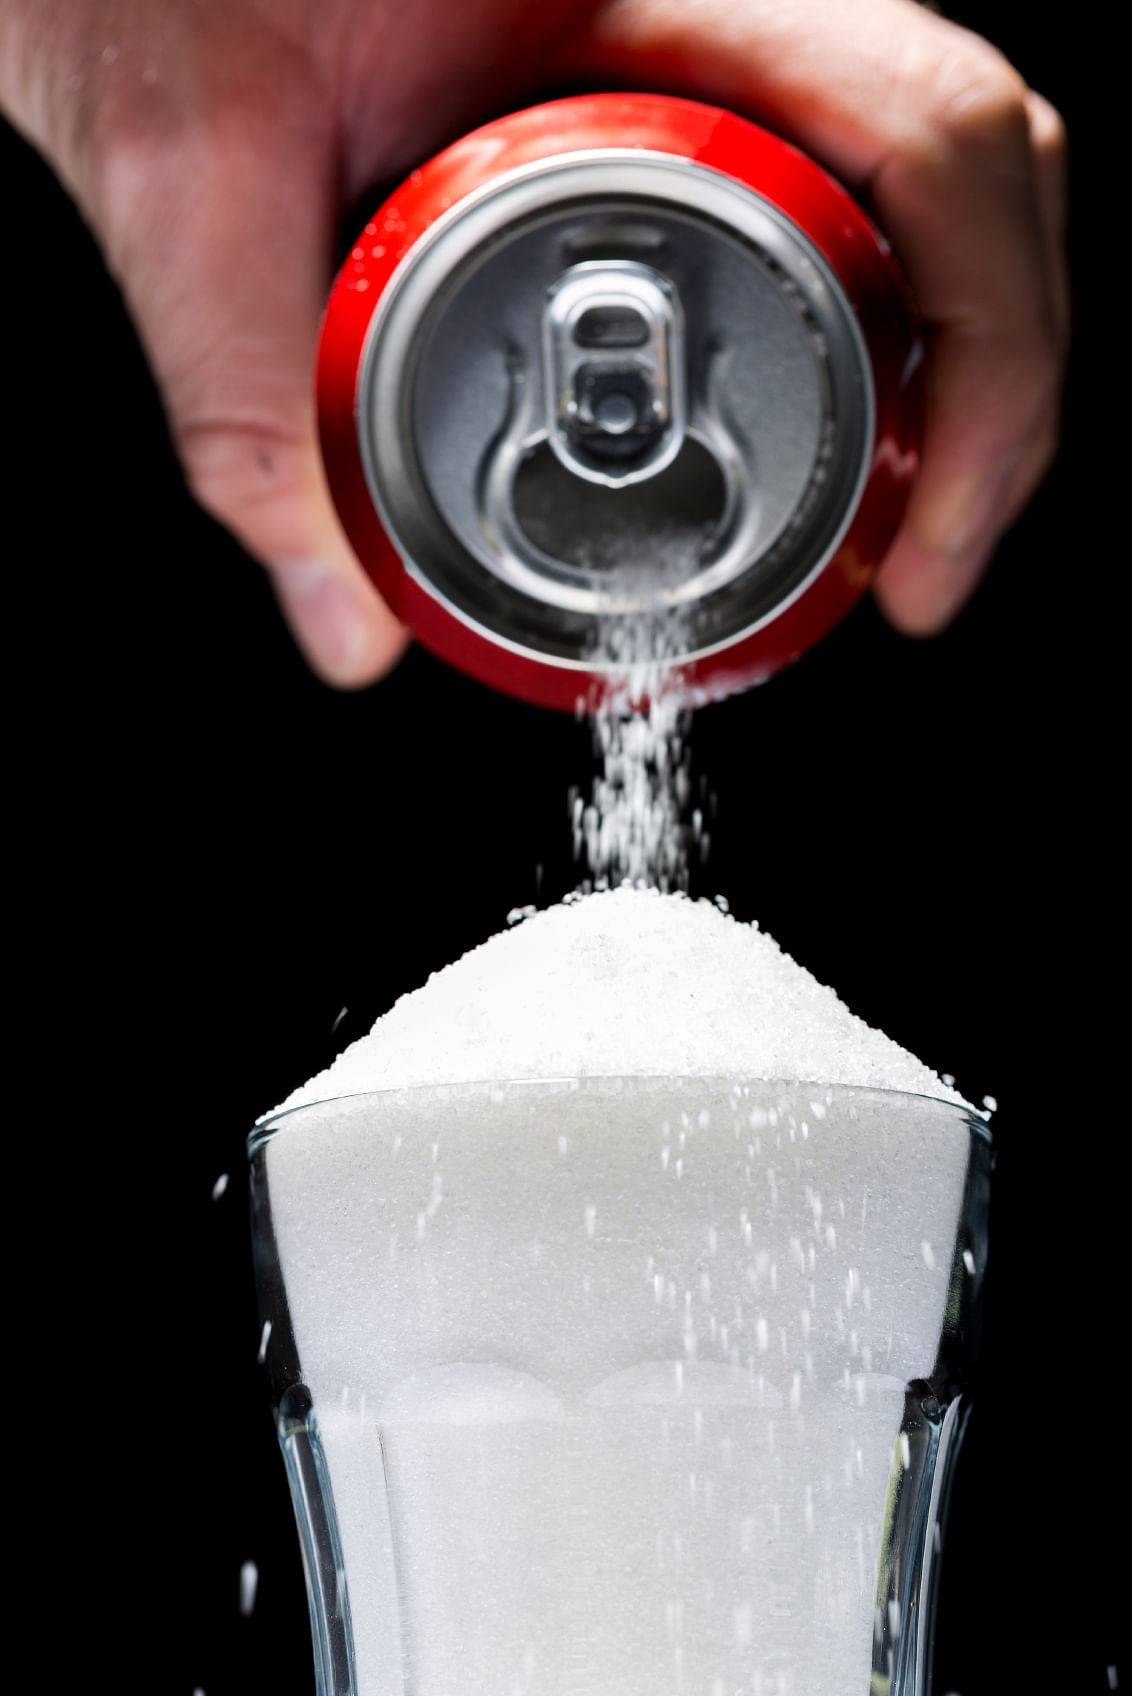 A normal size can of soda (diet or not) reduces the efficiency of the immune system by almost 50%, for 4-8 hours.